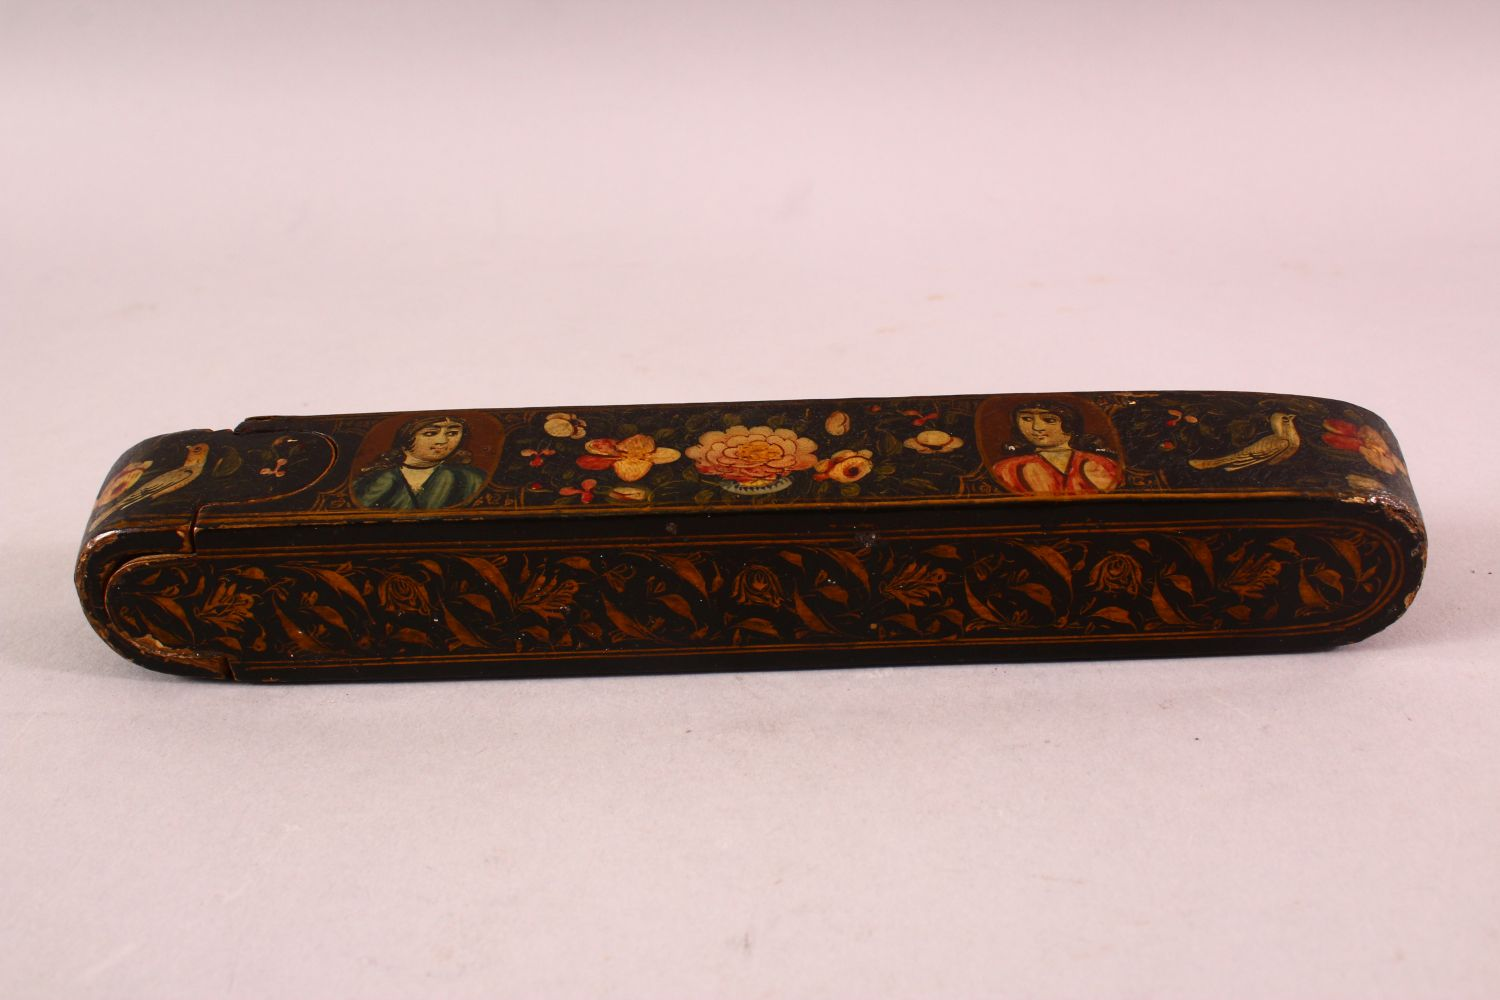 A PERSIAN QAJAR LACQUERED PEN BOX containing the brass inkwell, 23cm long. - Image 5 of 5